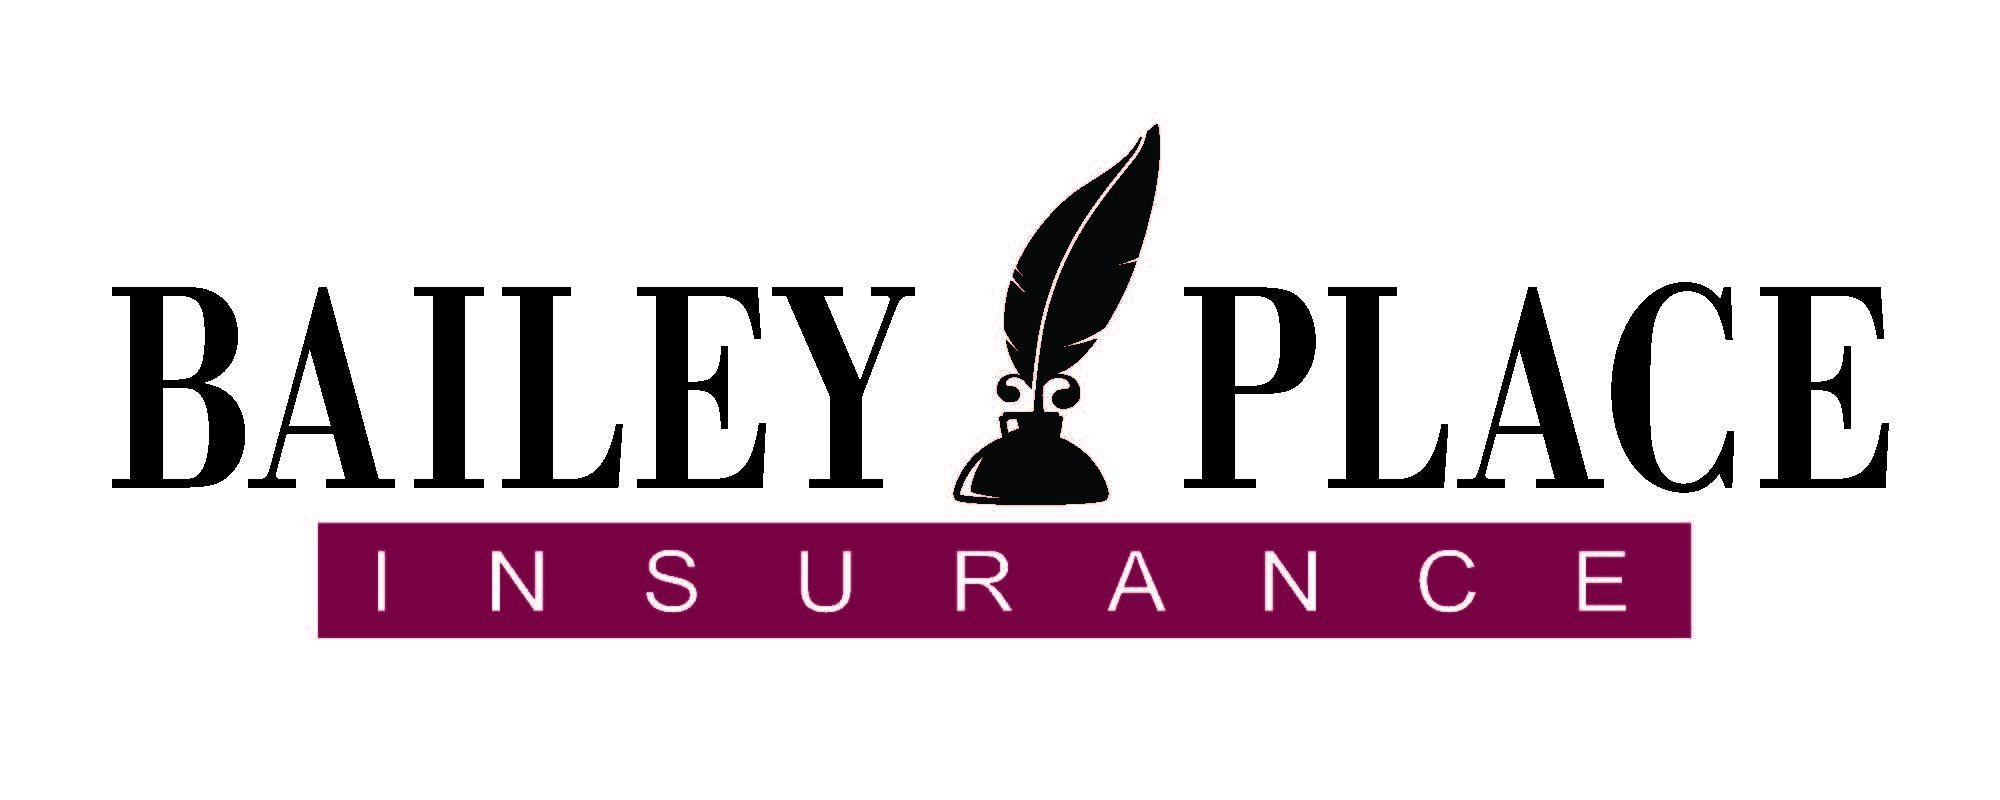 Bailey Place Insurance dba